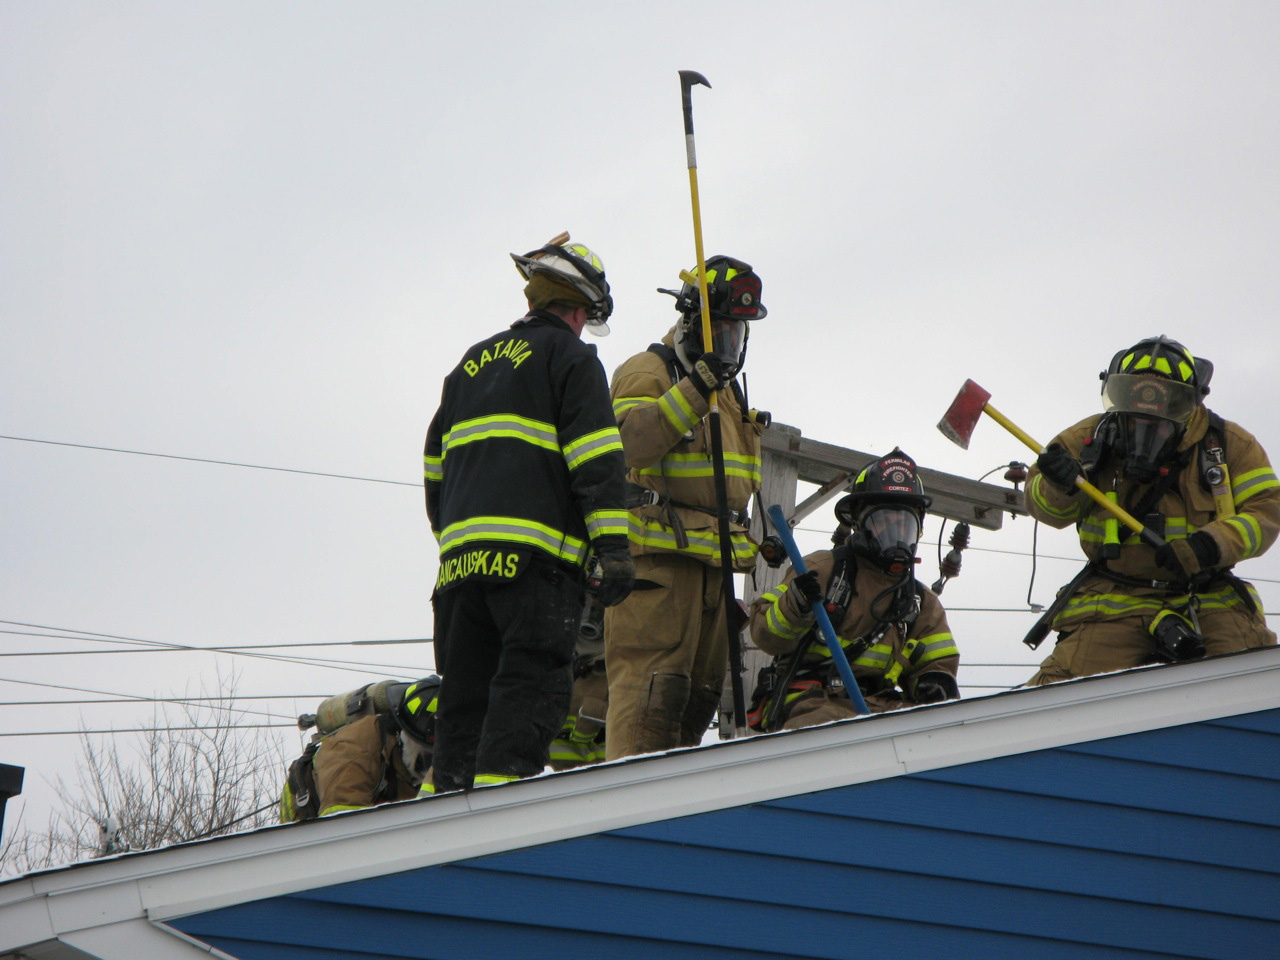 Last week, the Batavia, Fermilab and Warrenville fire departments conducted training exercises in the Village. FESS is removing materials from buildings scheduled to be demolished to be reused in similar structures elsewhere. The fire departments made use of these near-end-of-life buildings, running emergency drills in and on them. Here the Batavia fire chief joins Fermilab firefighters as they cut into one building's roof. Photo: Chuck Kuhn, BSS